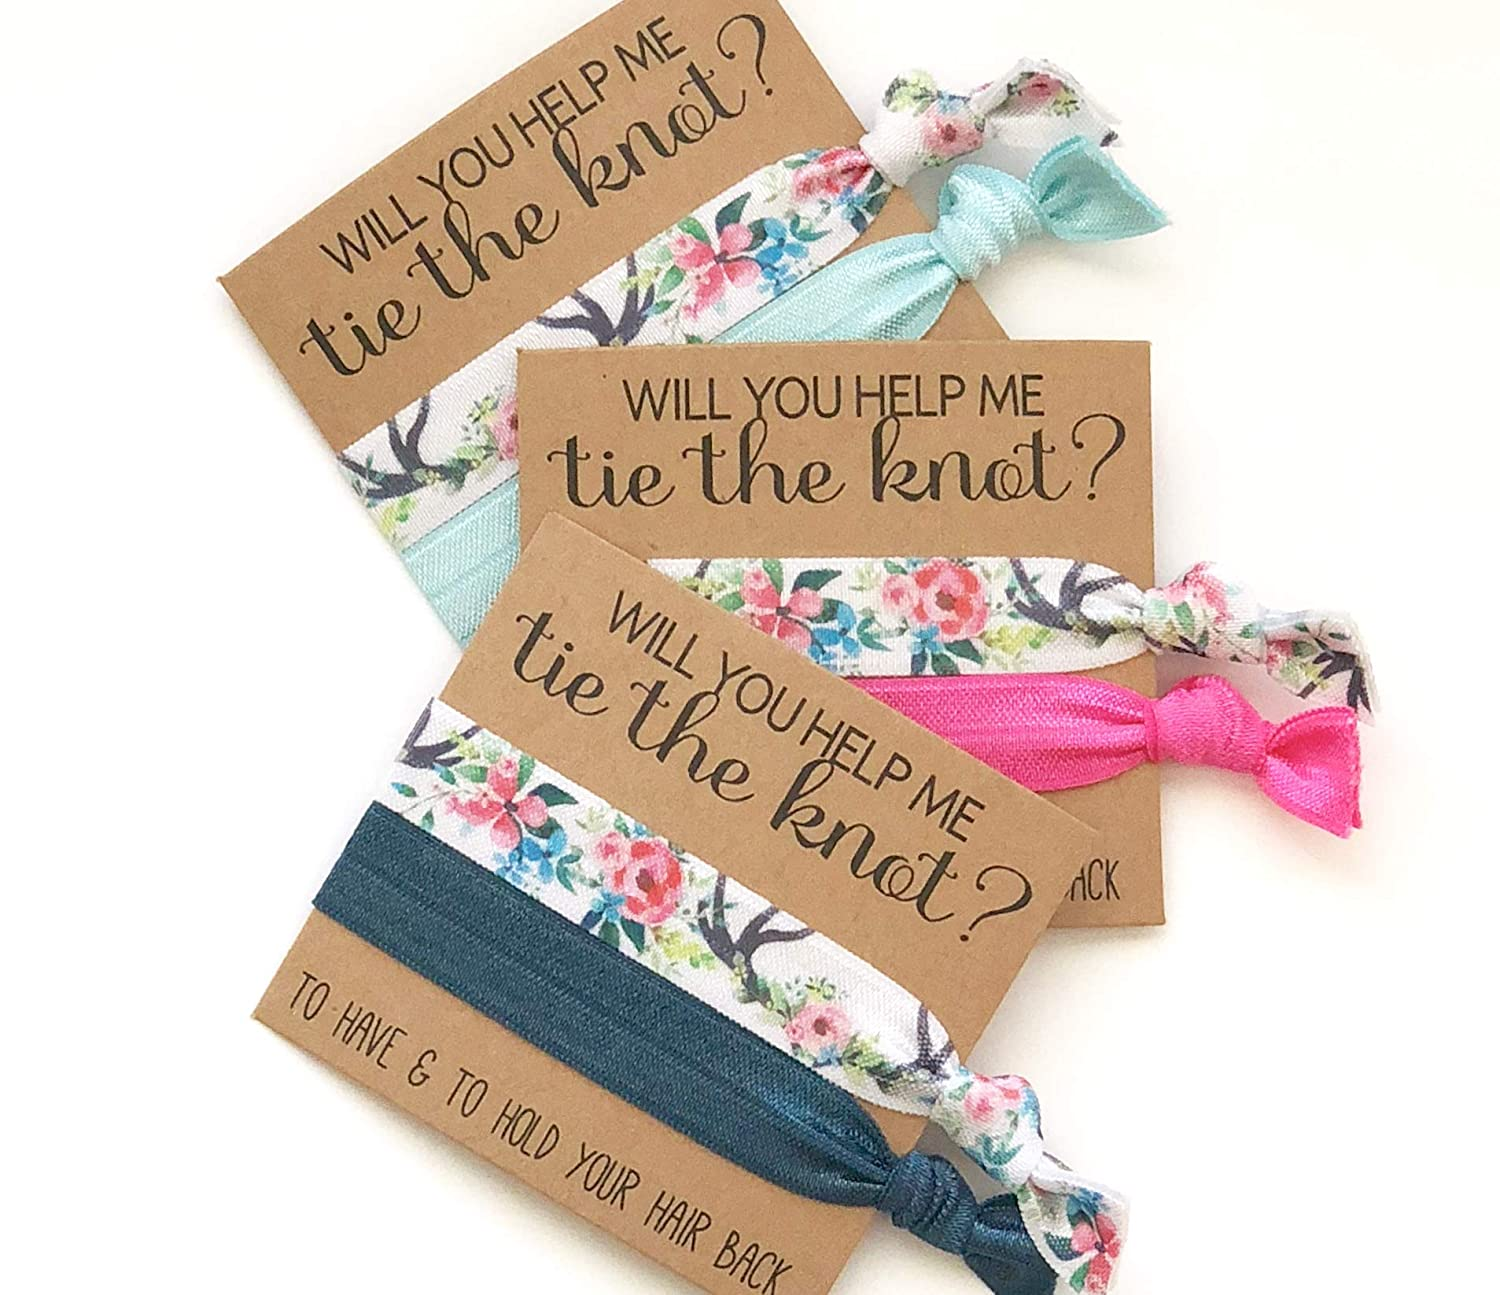 Will you help me Tie the Knot | Bridesmaid Proposal | Bridesmaid Hair Tie Favors | To have and to hold your hair back